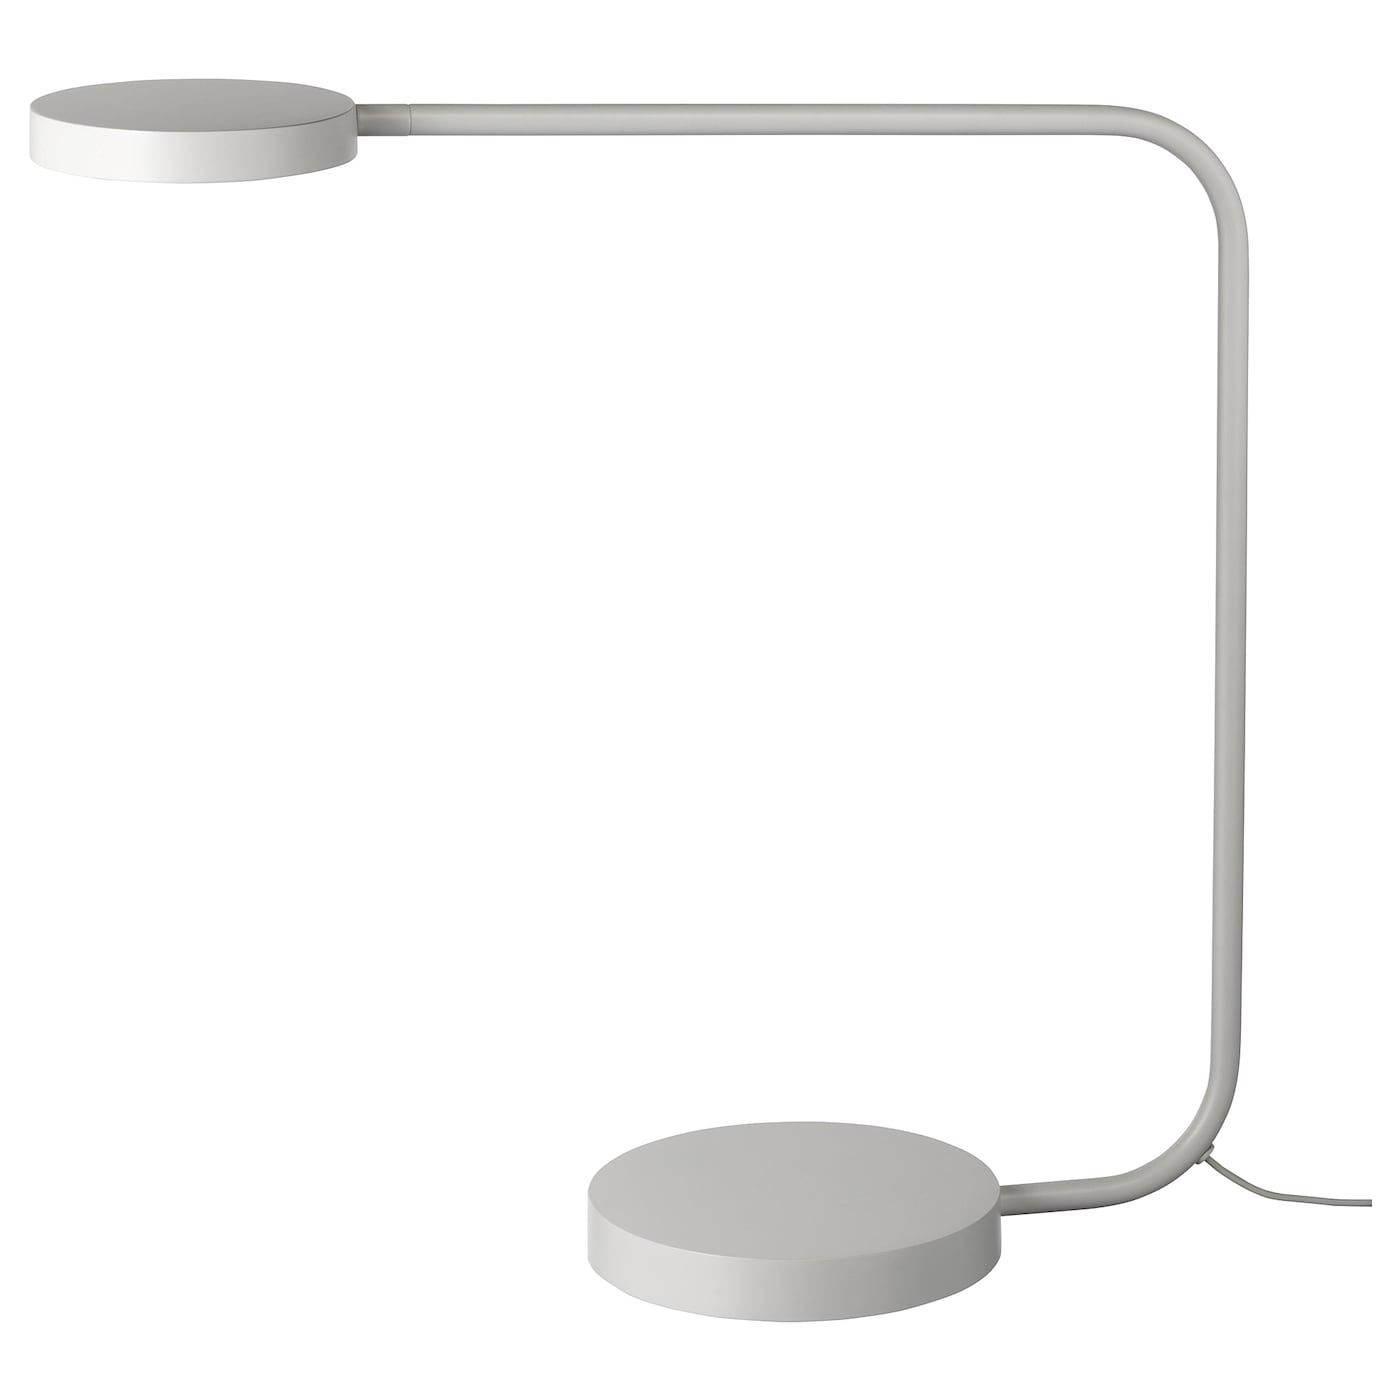 IKEA YPPERLIG, LED table lamp, light gray, A built in